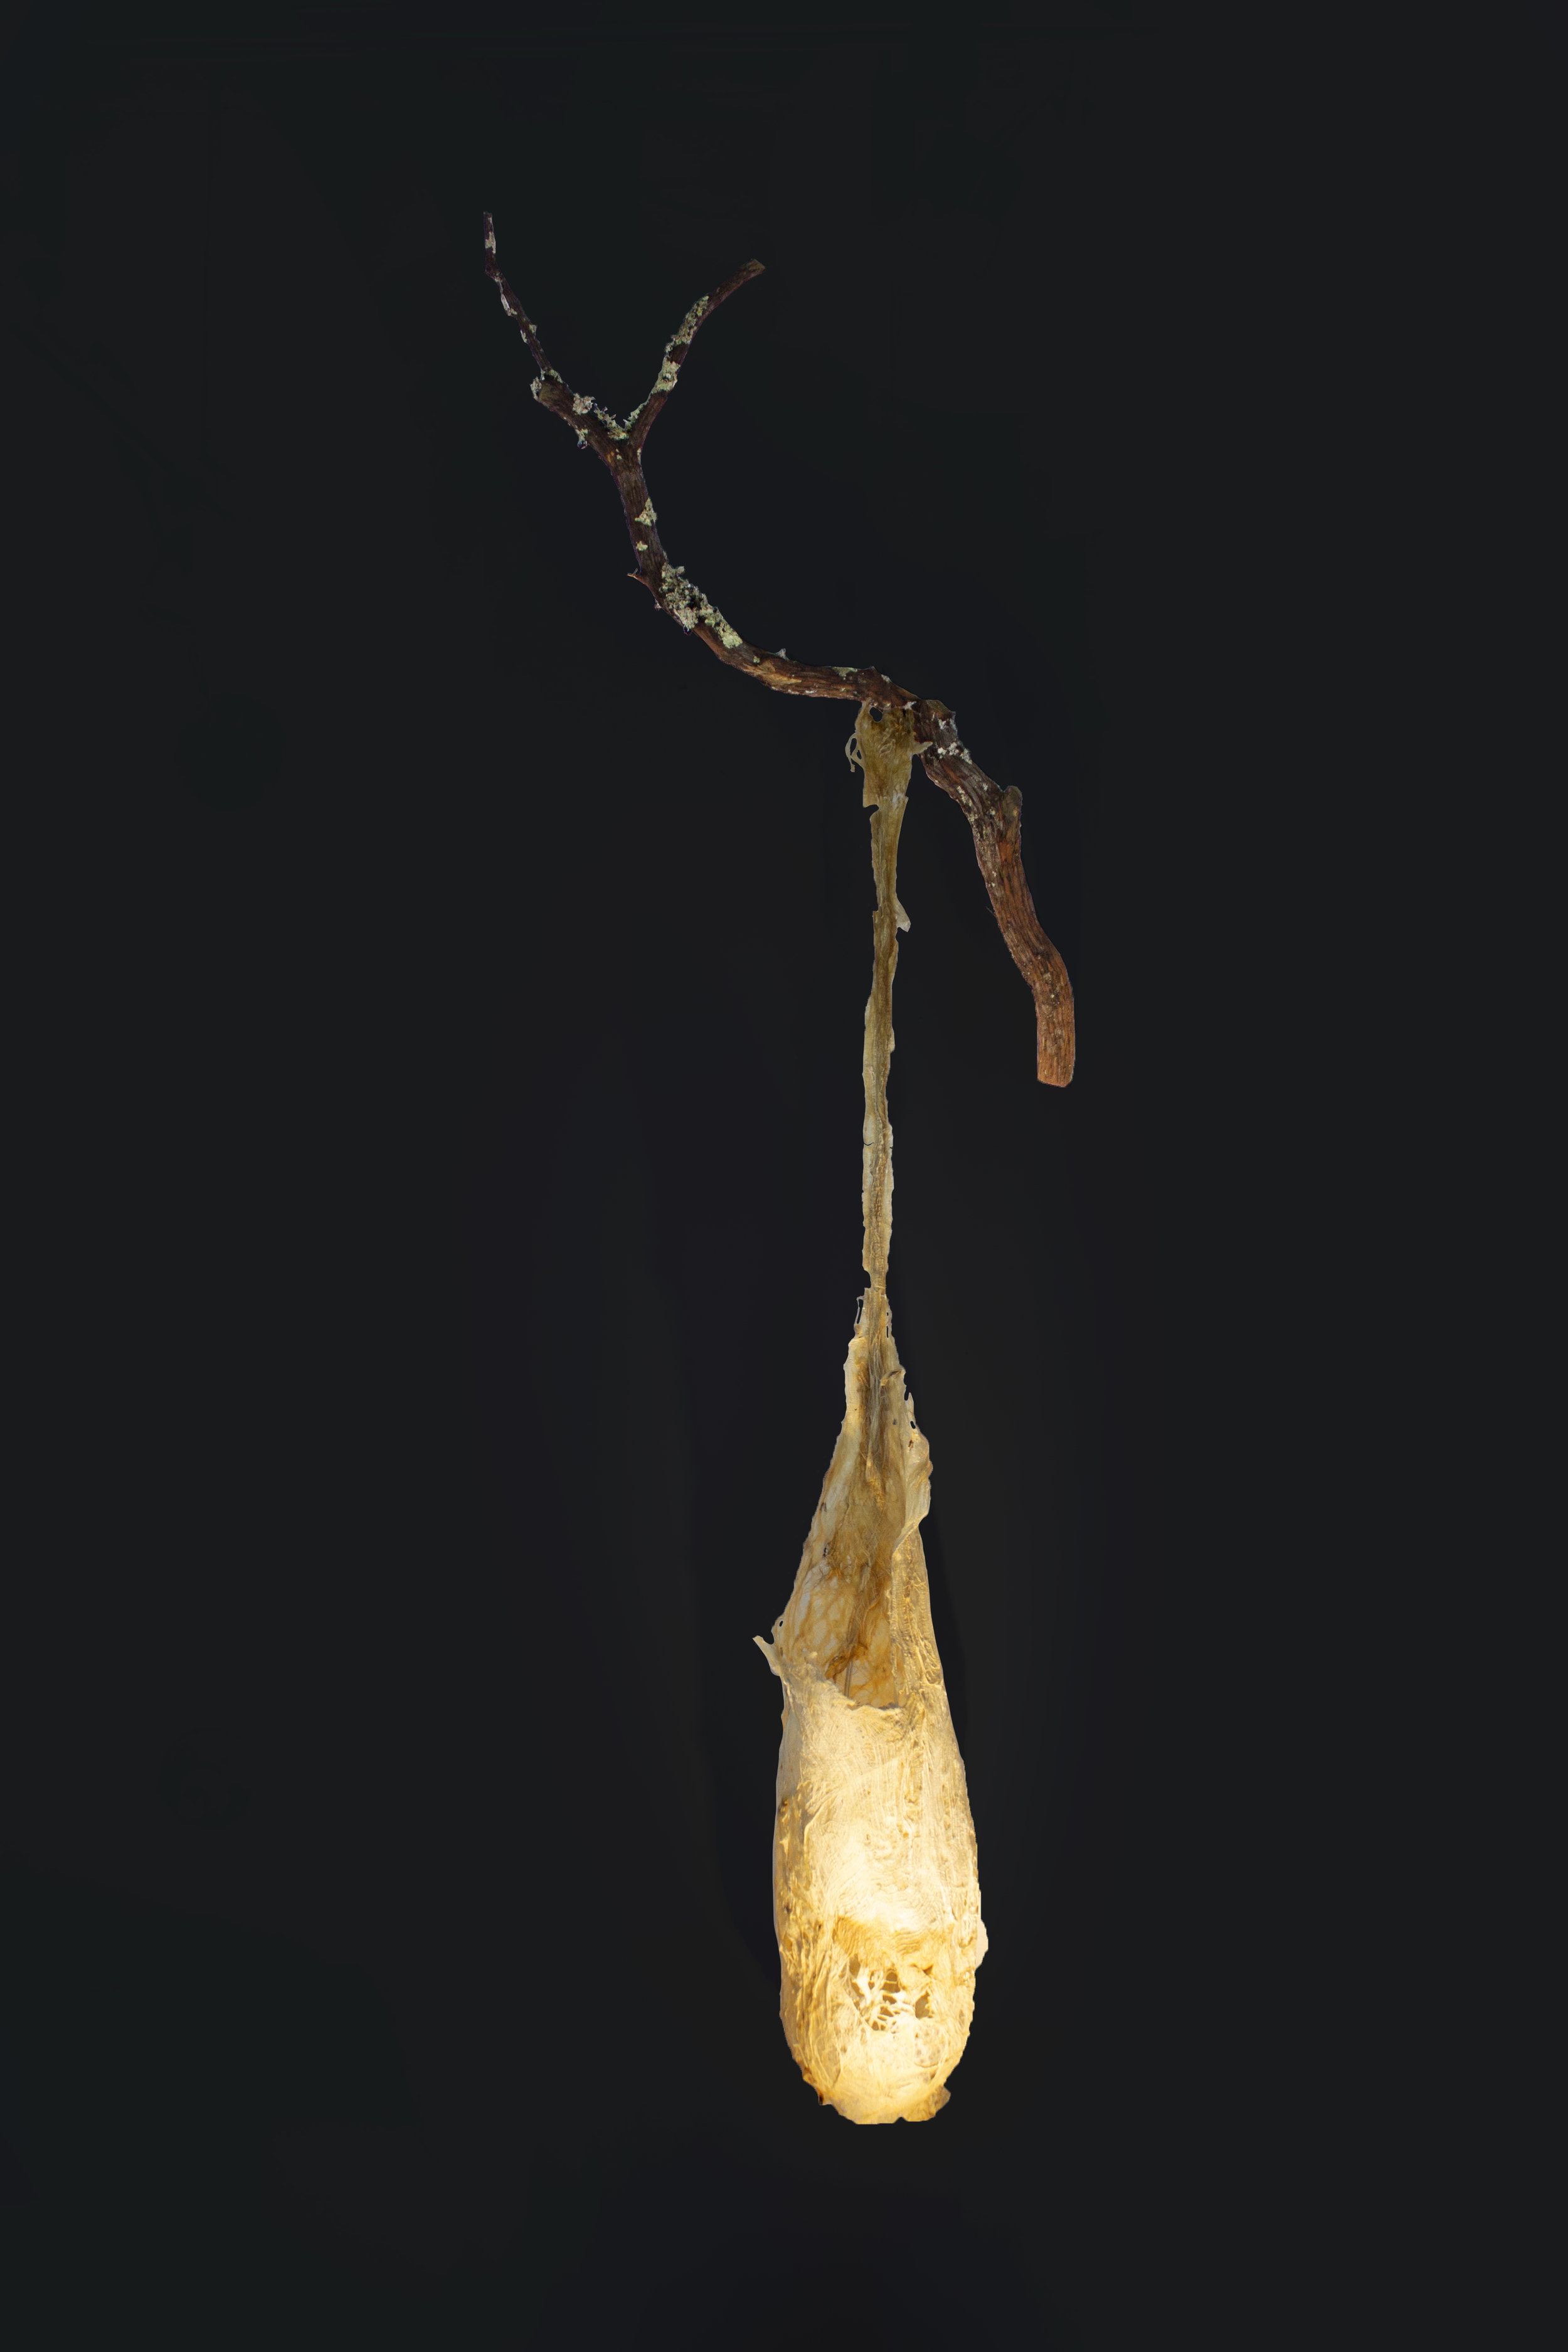 """COCOON I, 2017, CAMBIUM FIBER FROM ASIAN MULBERRY TREE, BRACH, AND LED LIGHT, 75""""H x 27""""W x 10""""D, $1450"""